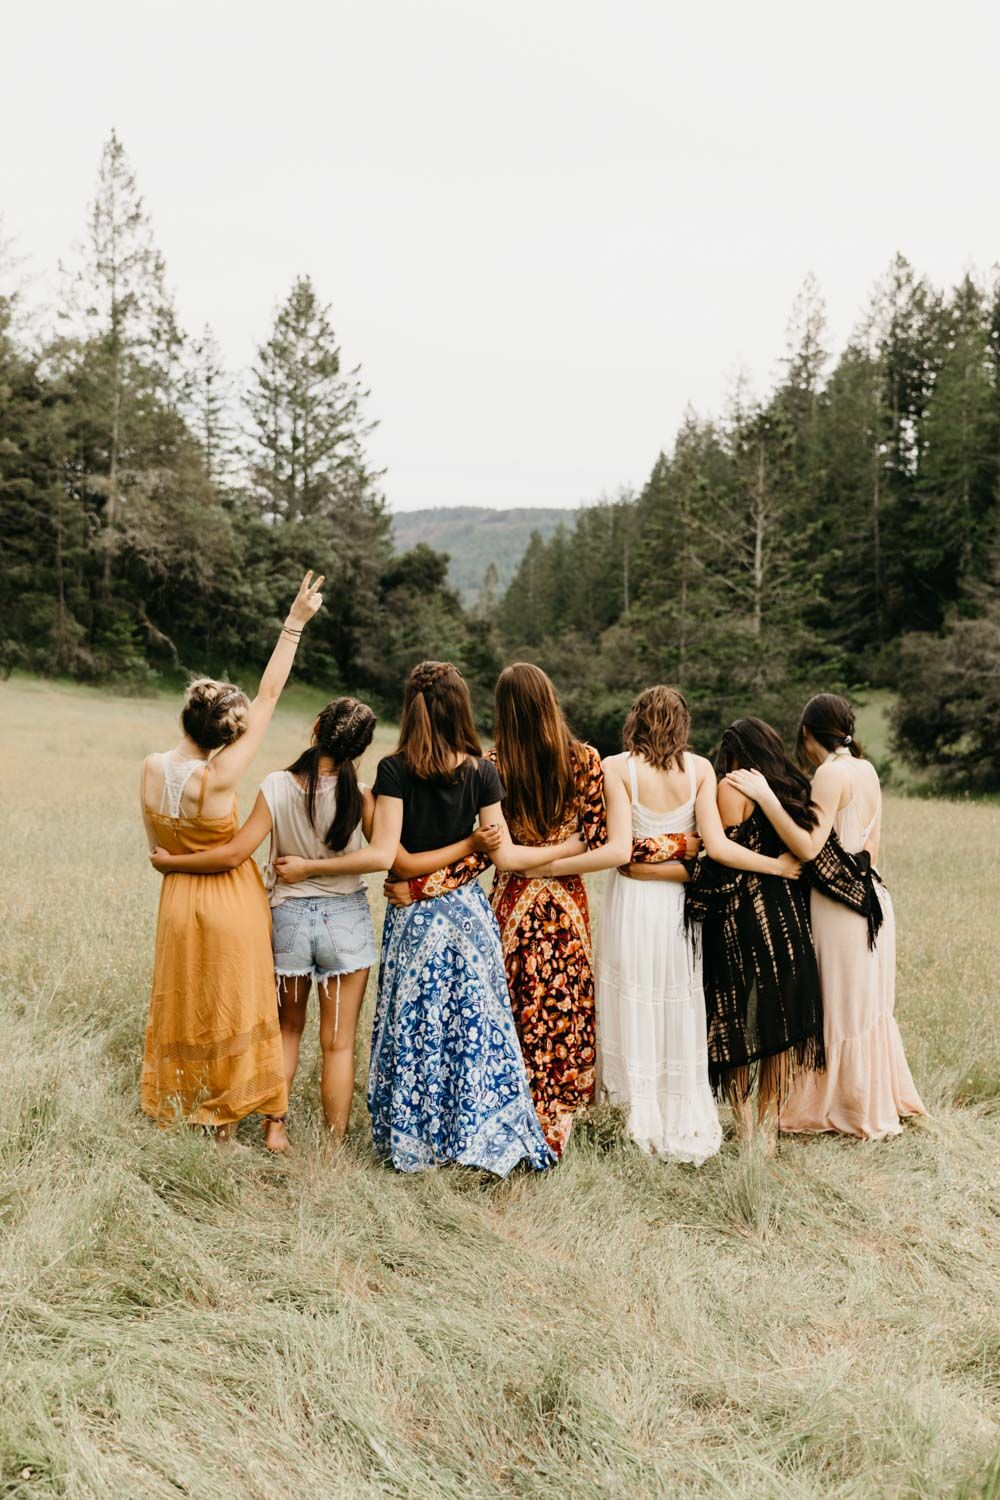 Best 12 Class of 2019 Rep Shoot was shot in the beautiful meadows of Sonoma County. This Coachella themed senior rep shoot was just a dream!